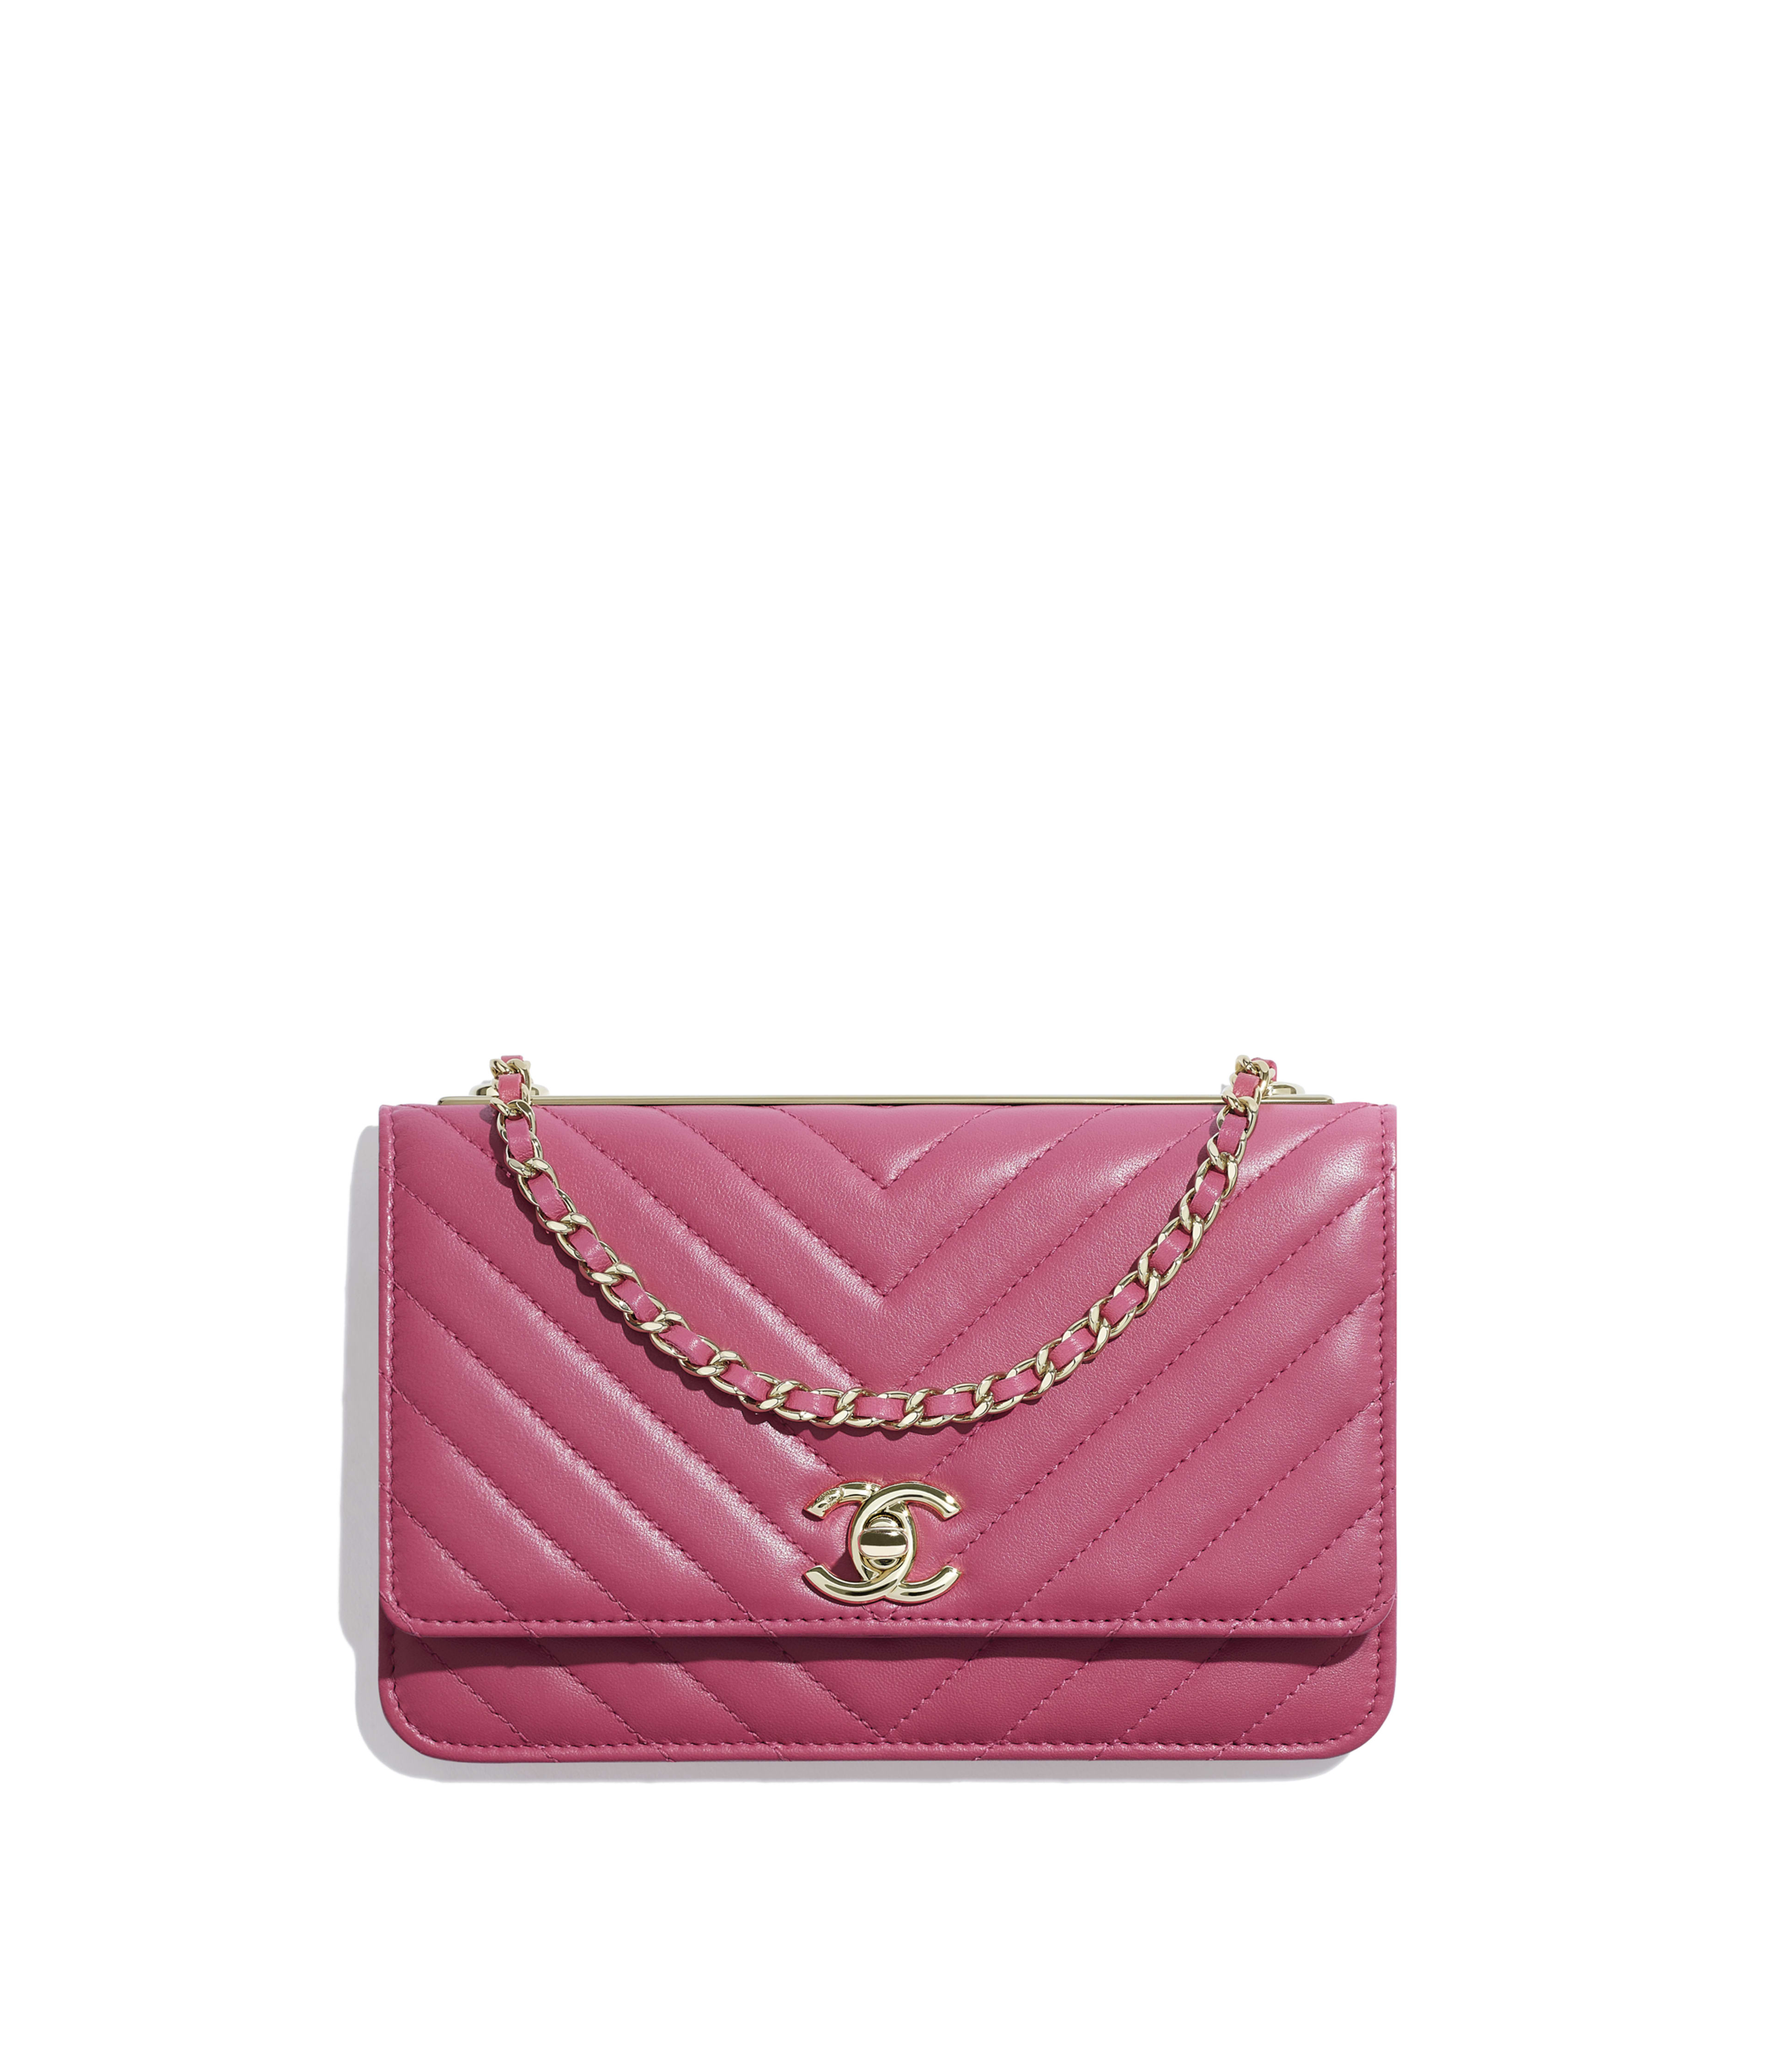 Wallet on Chain Lambskin   Gold-Tone Metal, Pink Ref. A80982Y833665B649 25c6d73aec